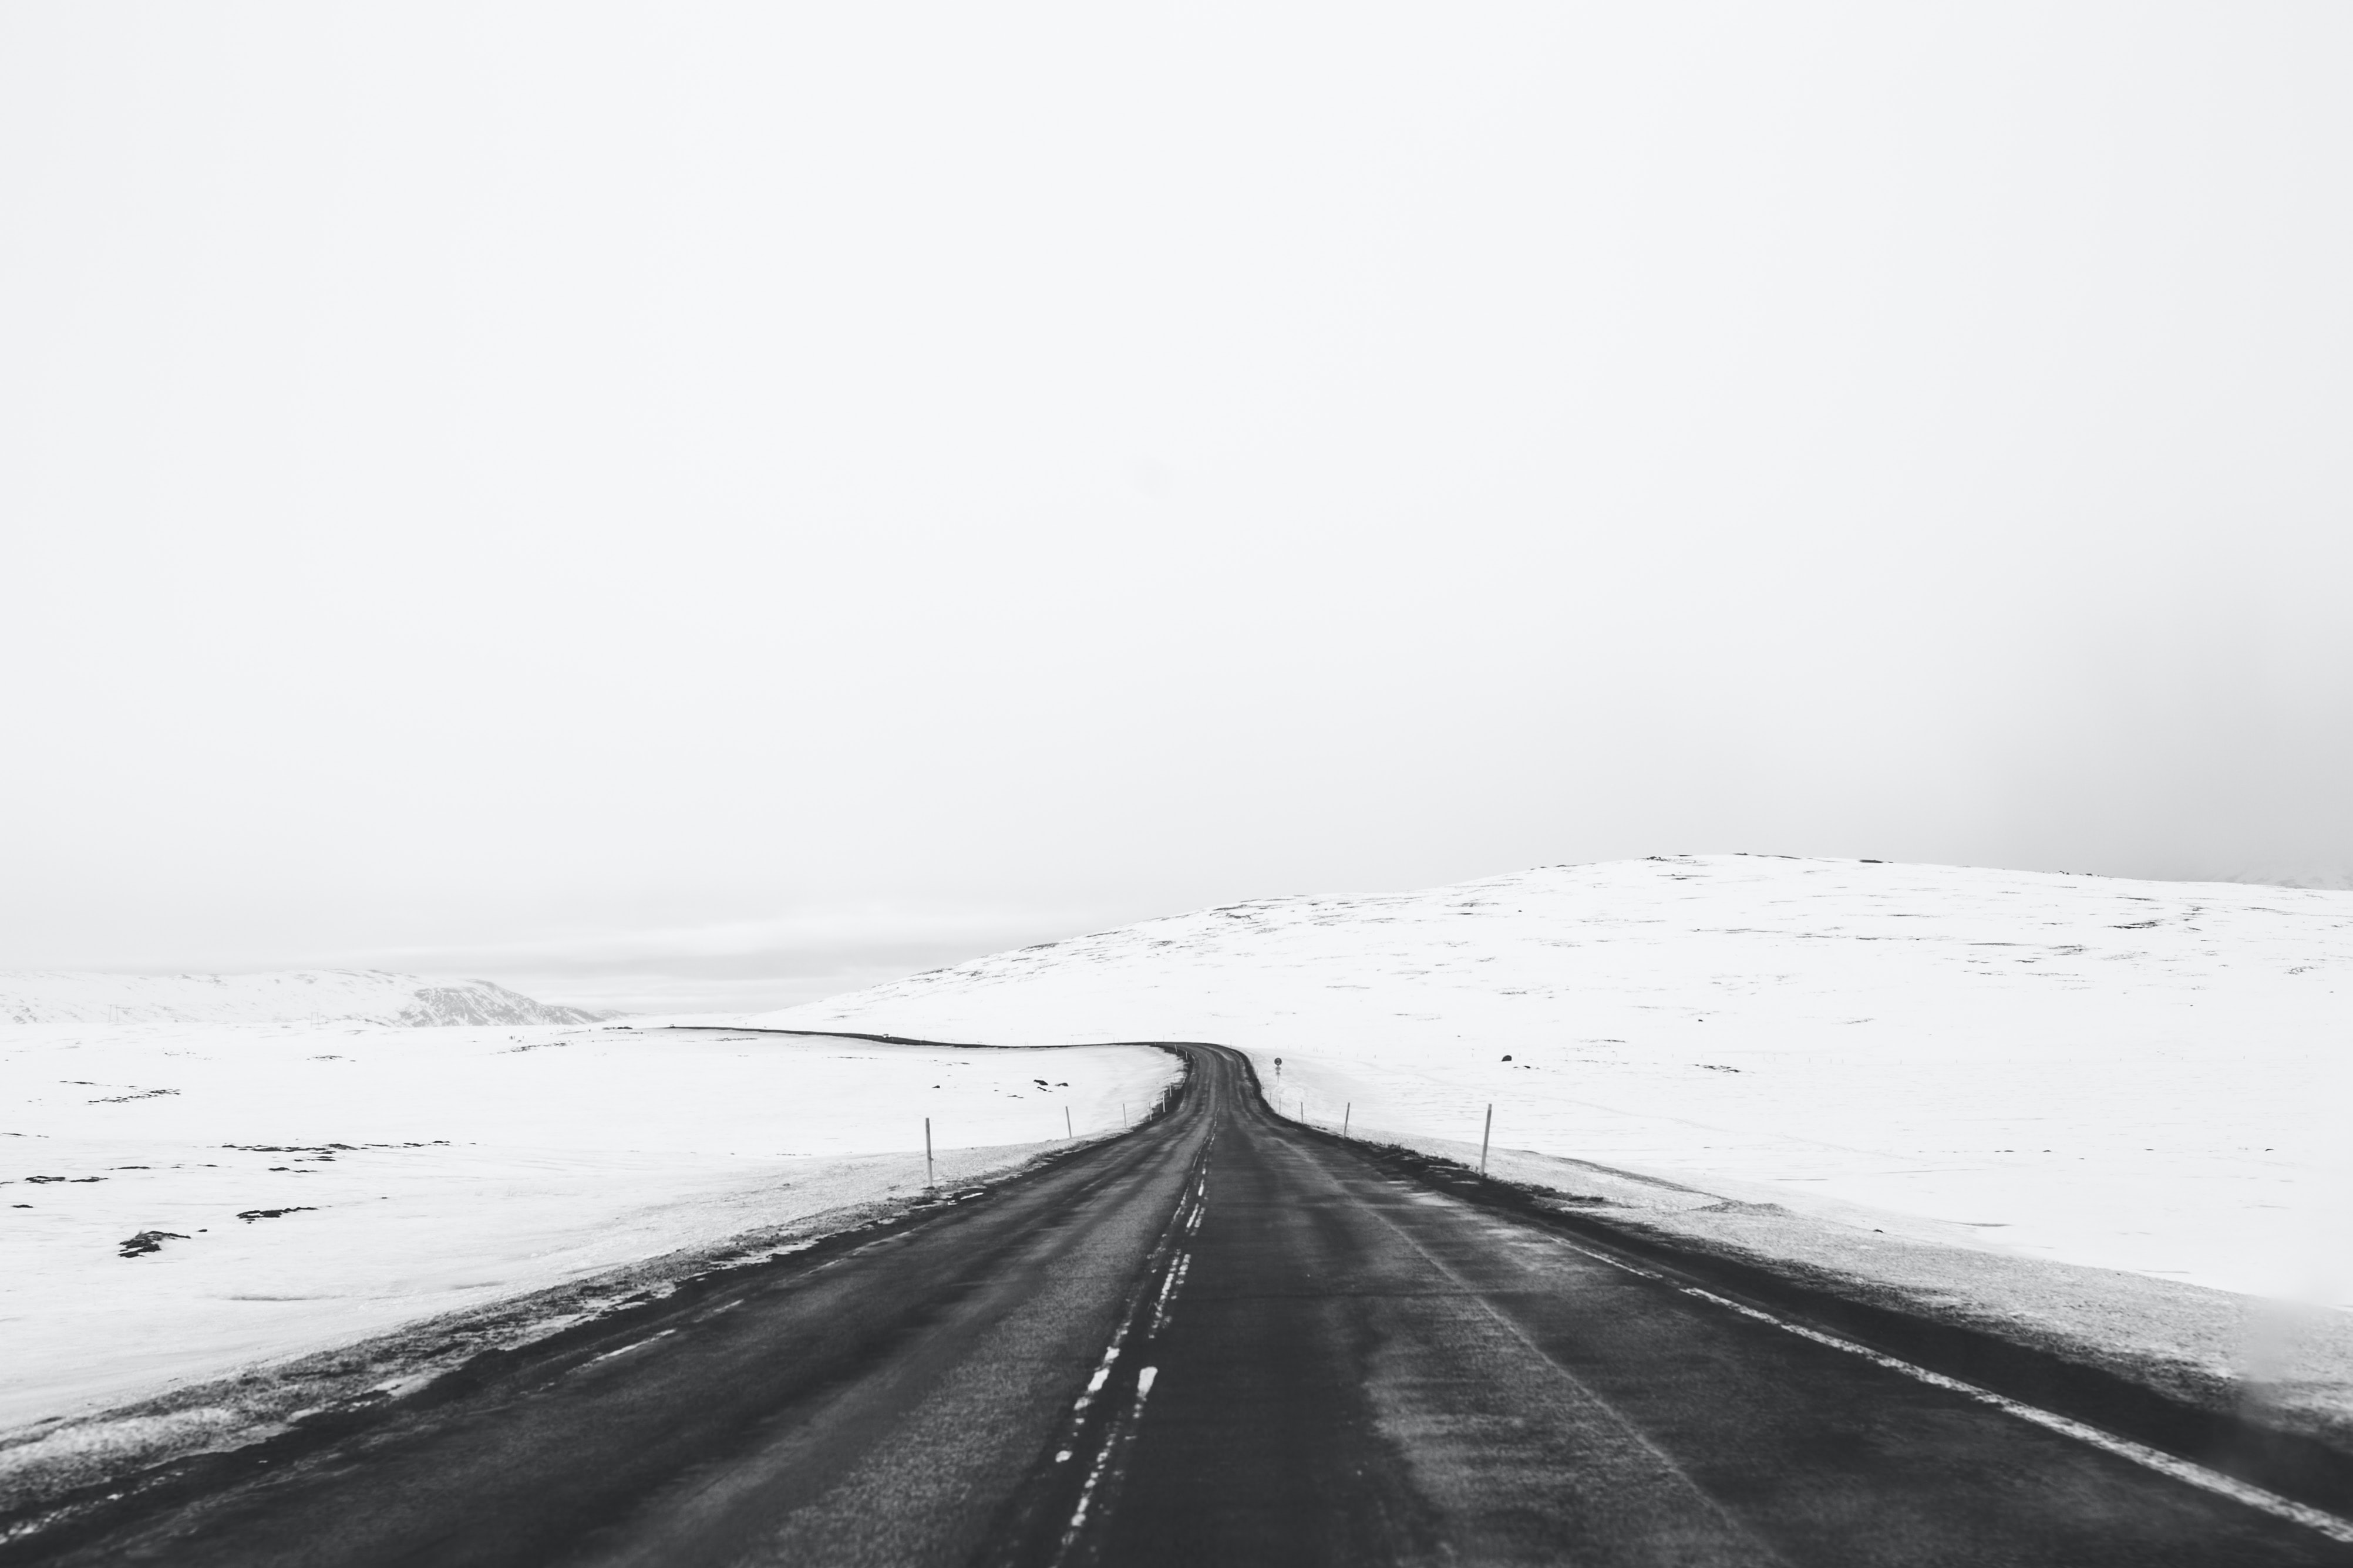 photo of asphalt road towards snow field